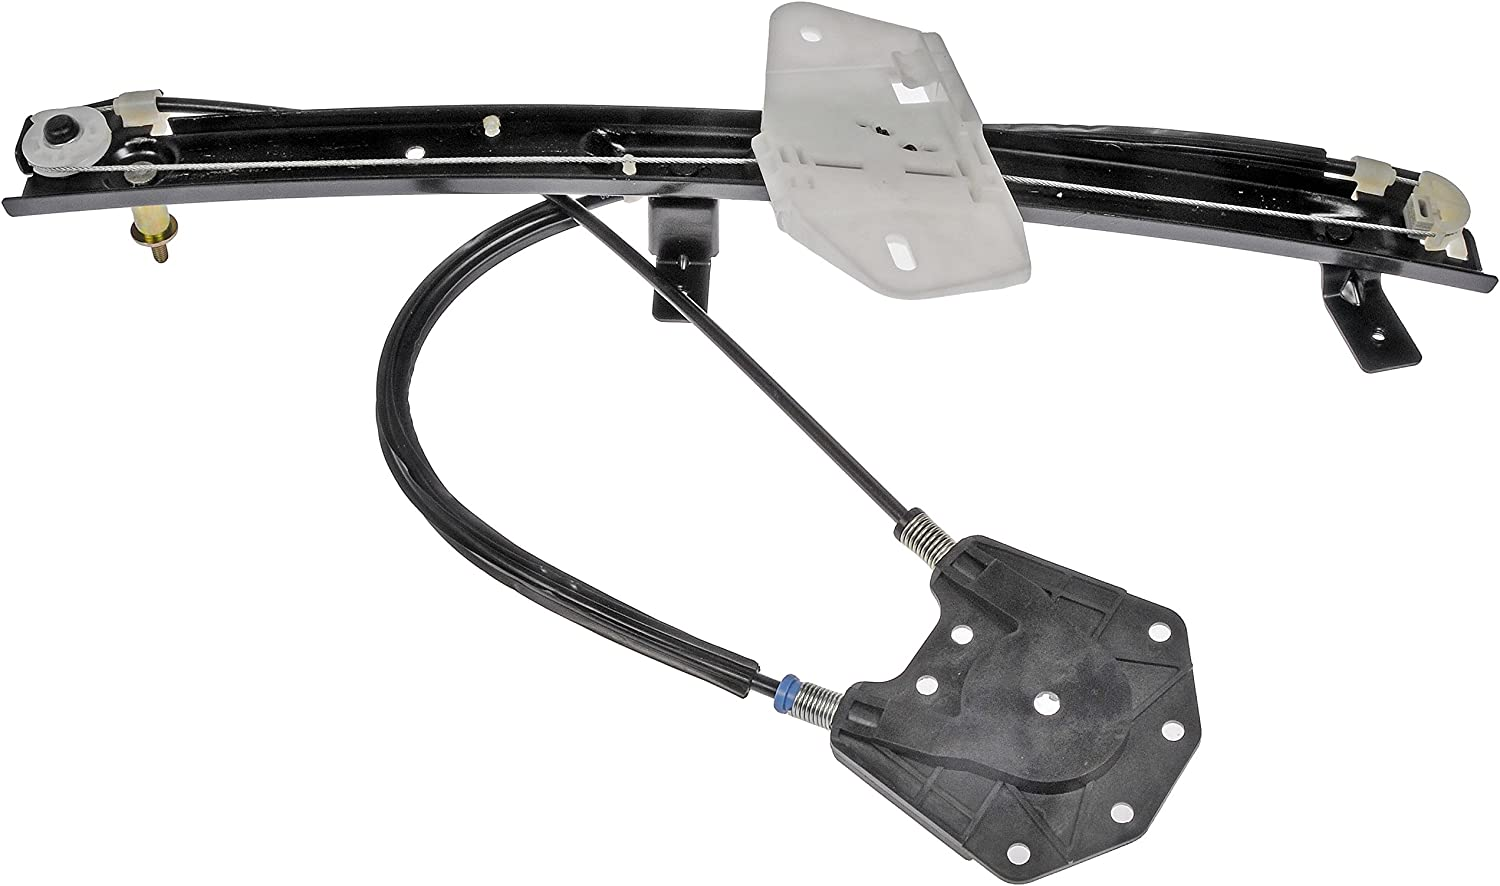 Dorman 741-534 Front Driver Side Replacement Power Window Regulator with Motor for Select Chrysler//Dodge Models